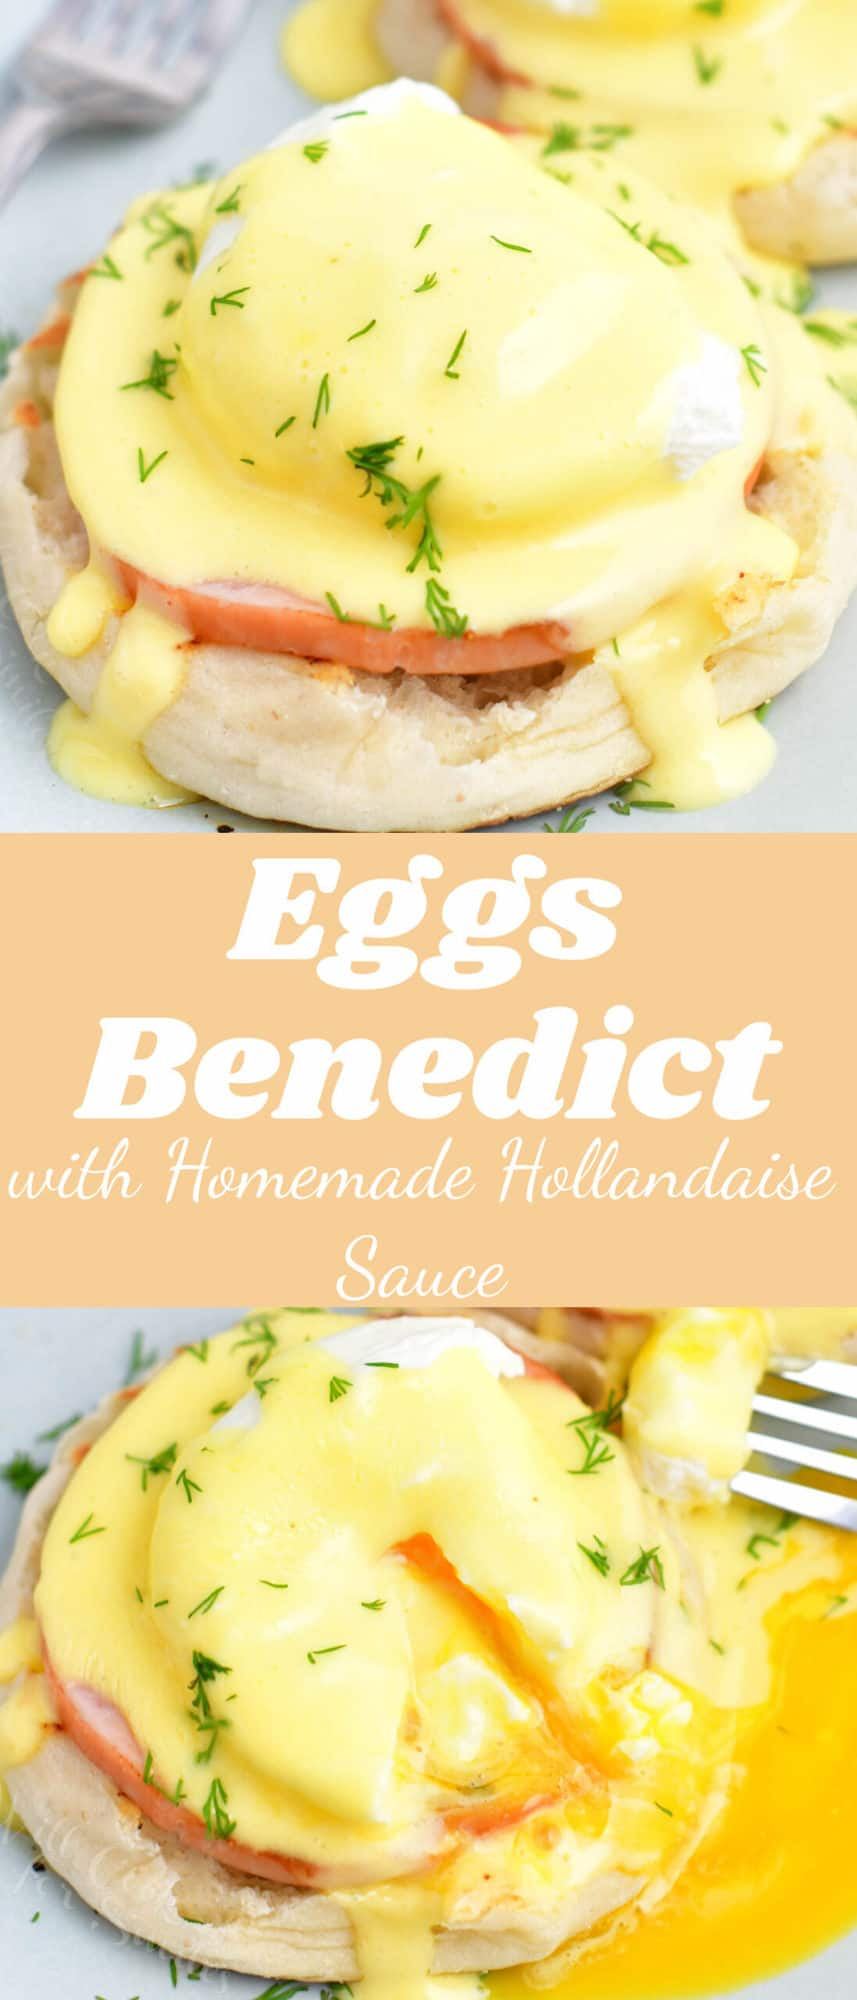 title collage with eggs benedict closeup on top and broken yolk eggs on the bottom